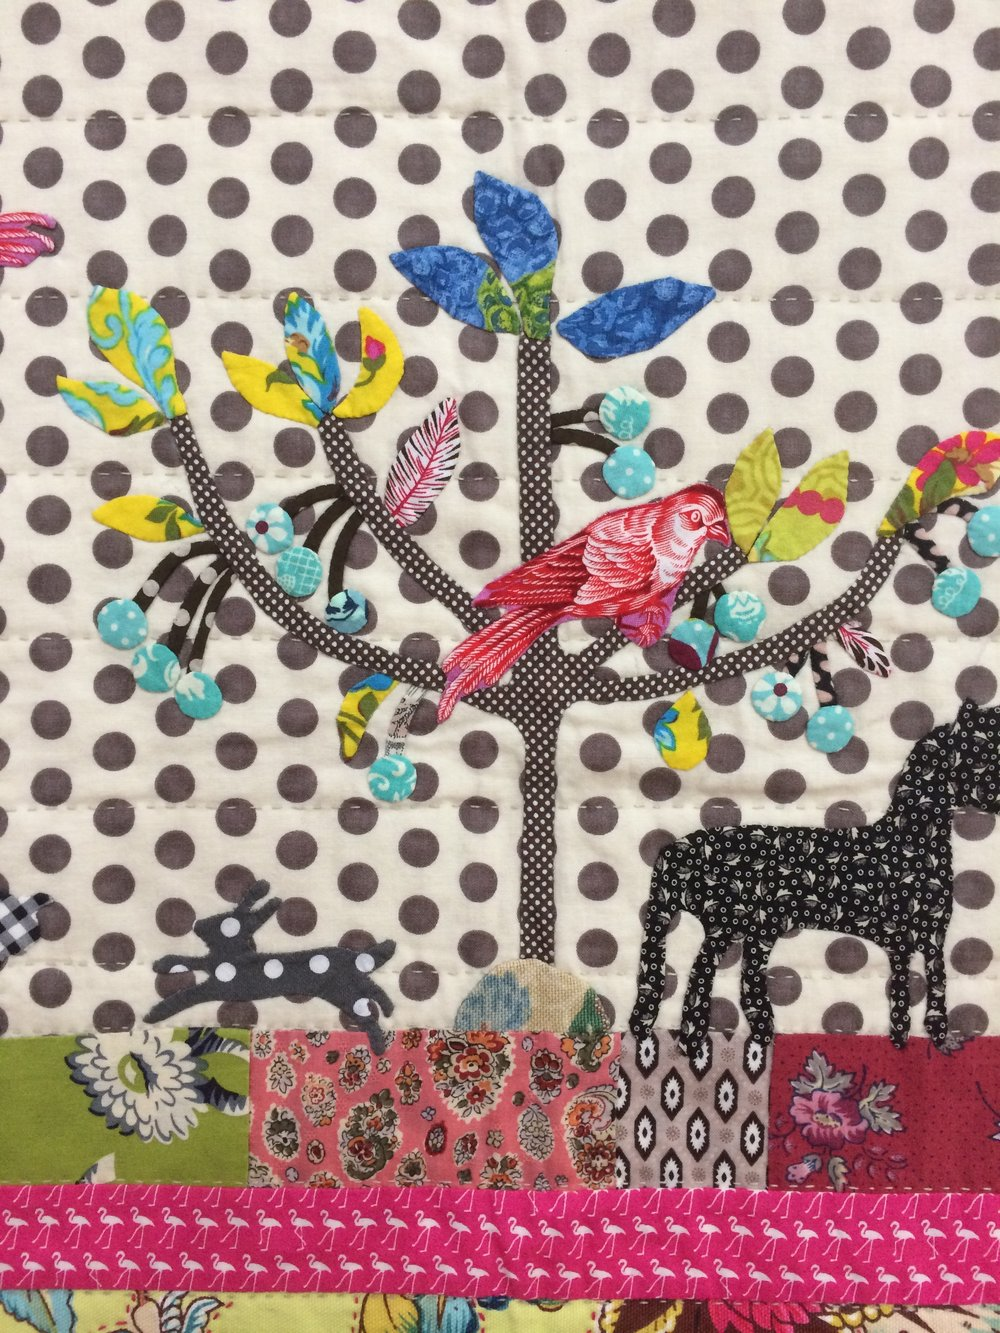 I love the leggy flamingoes and contrast in spots. This is one of Marg's quilts.